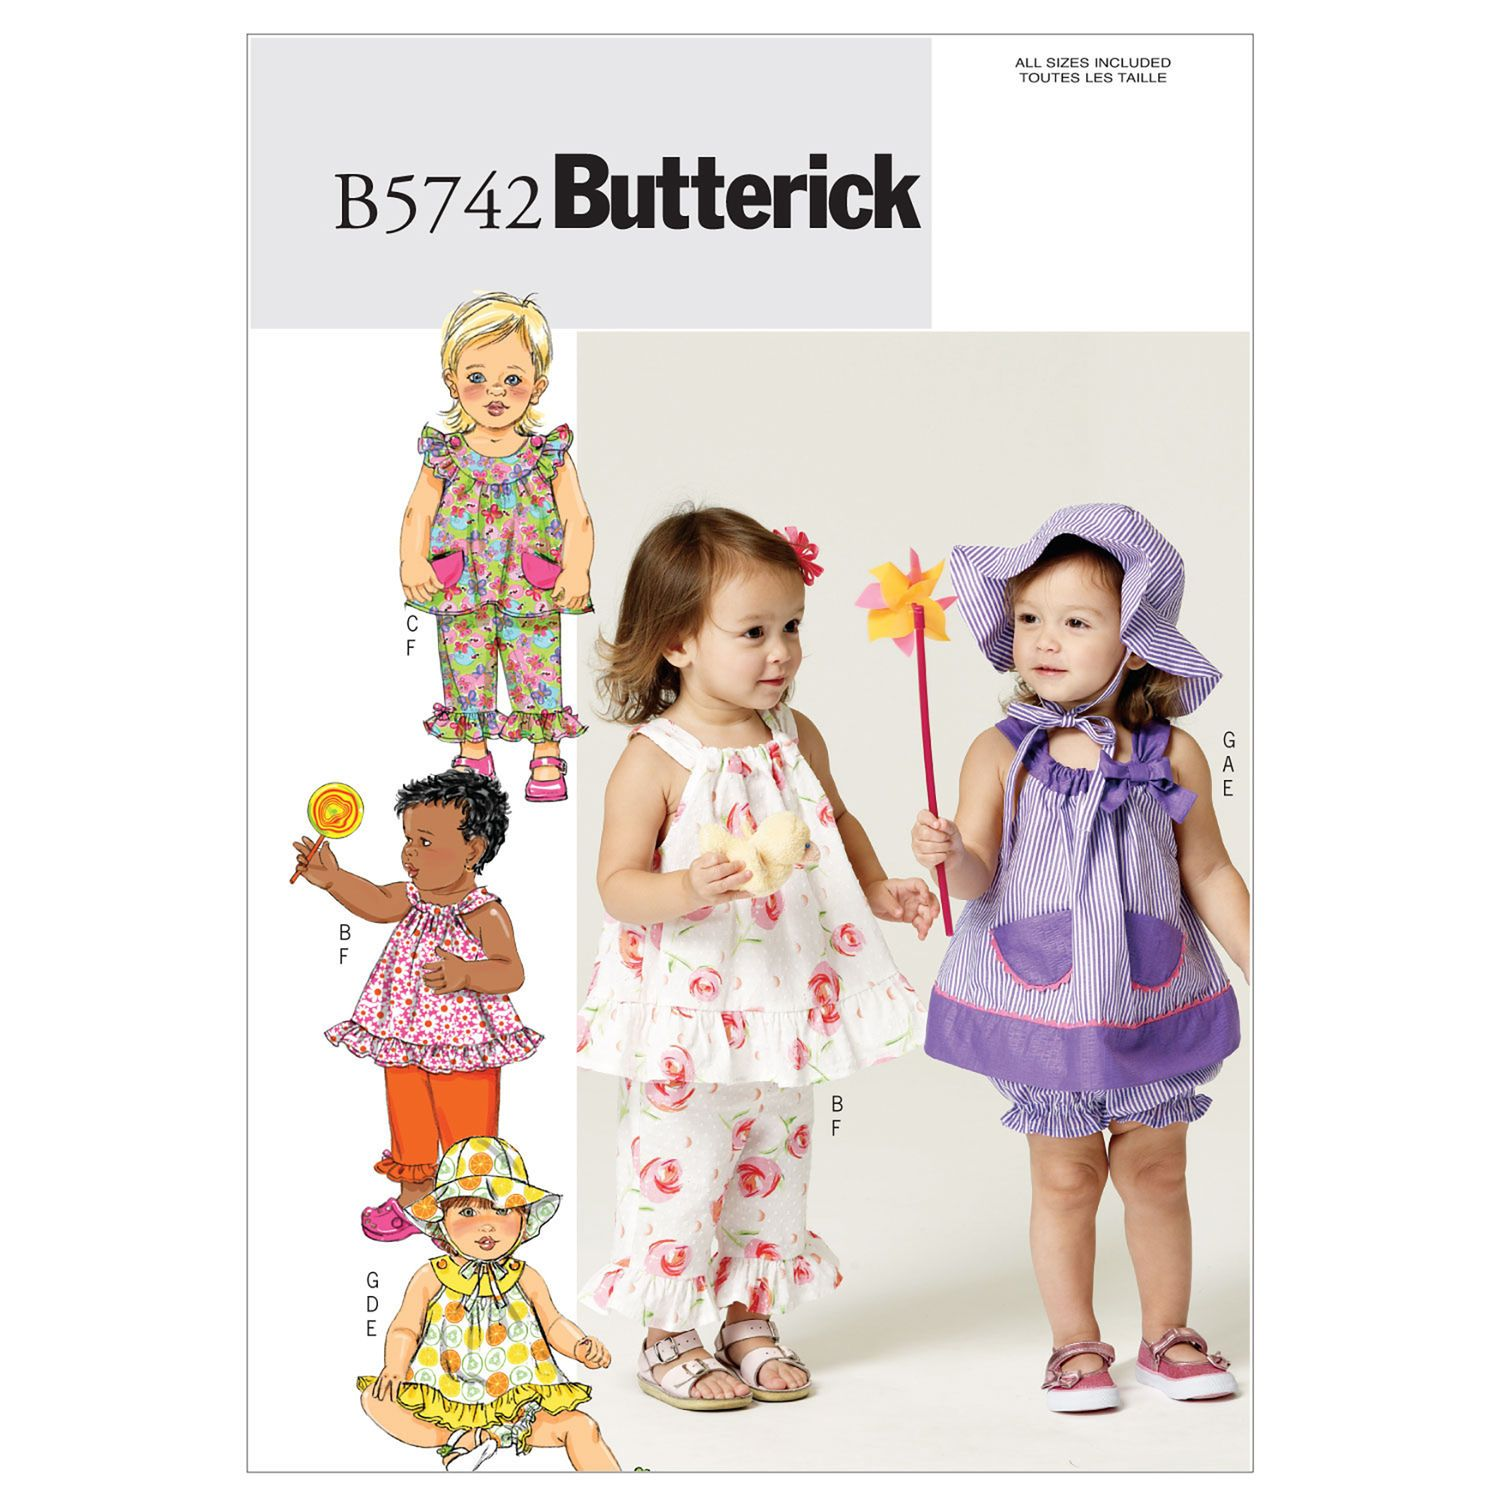 Butterick Infants' Top, Bloomers, Pants and Hat Pattern - Size: All Sizes in One Envelope - Pattern Number: B5742